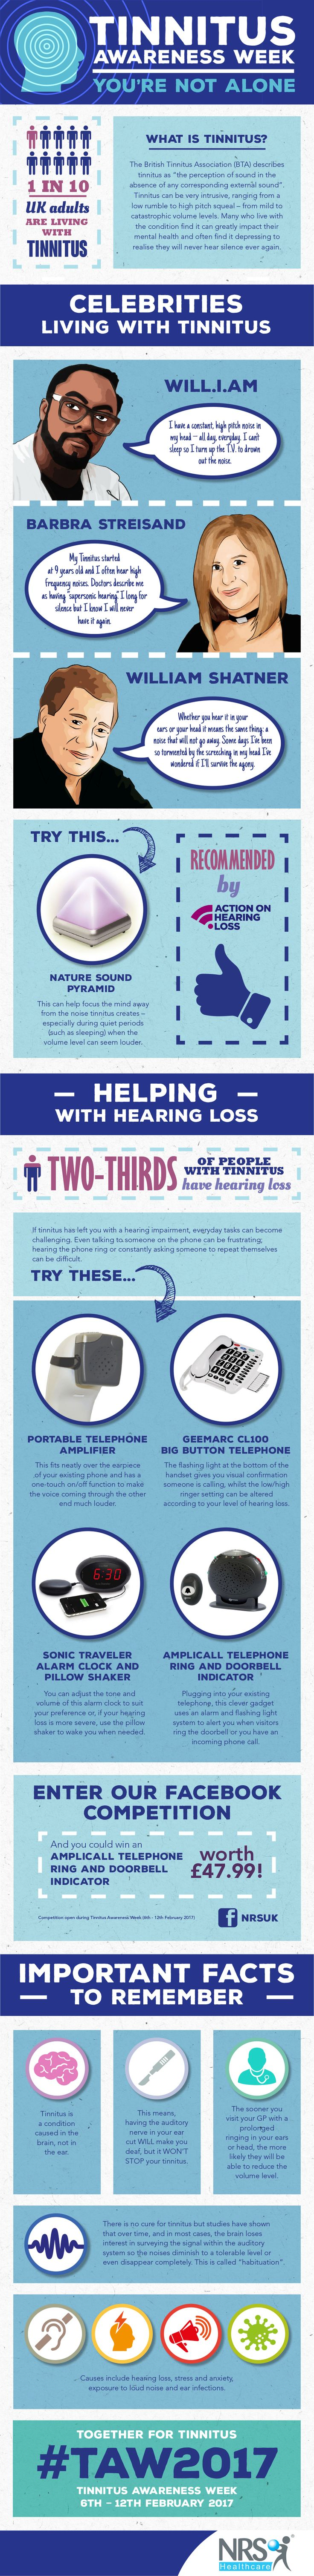 Awesome information on Tinnitus in support of Tinnitus Awareness Week #TAW2017